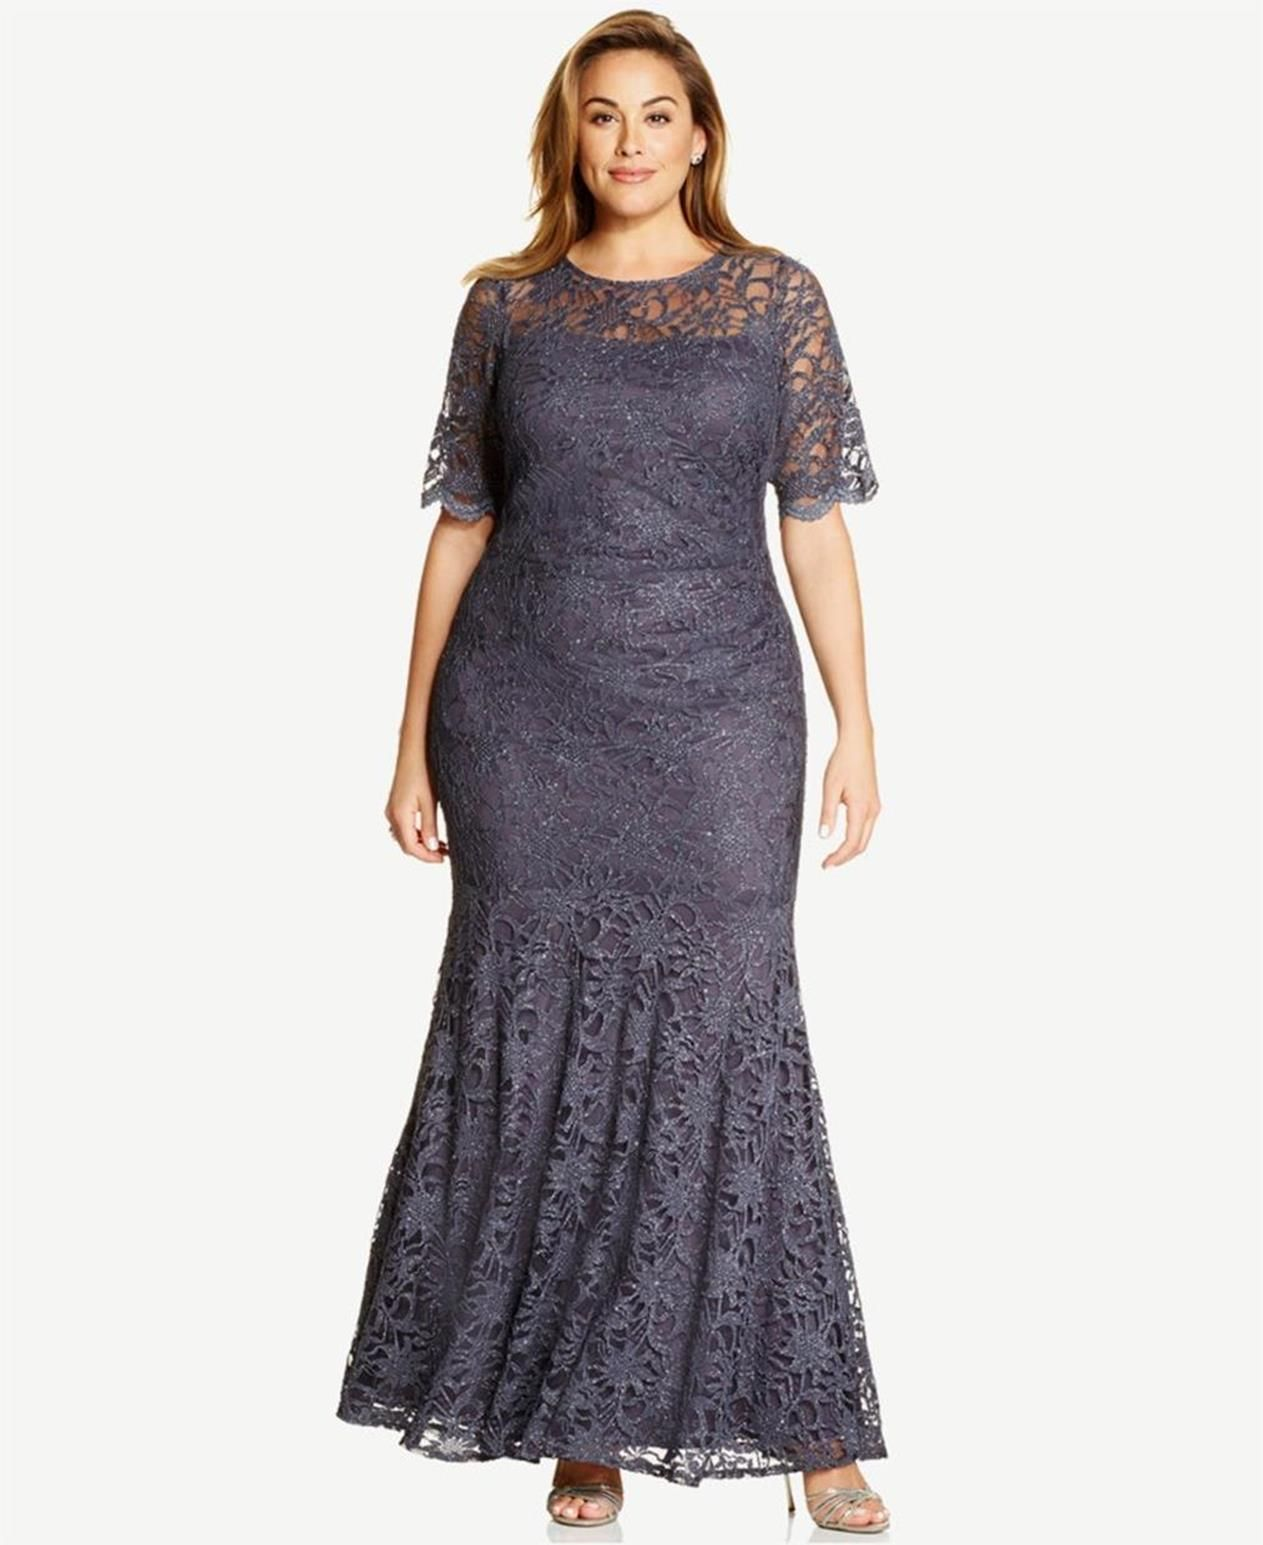 4 Most Beautiful Macys Dresses For Wedding Guests 4